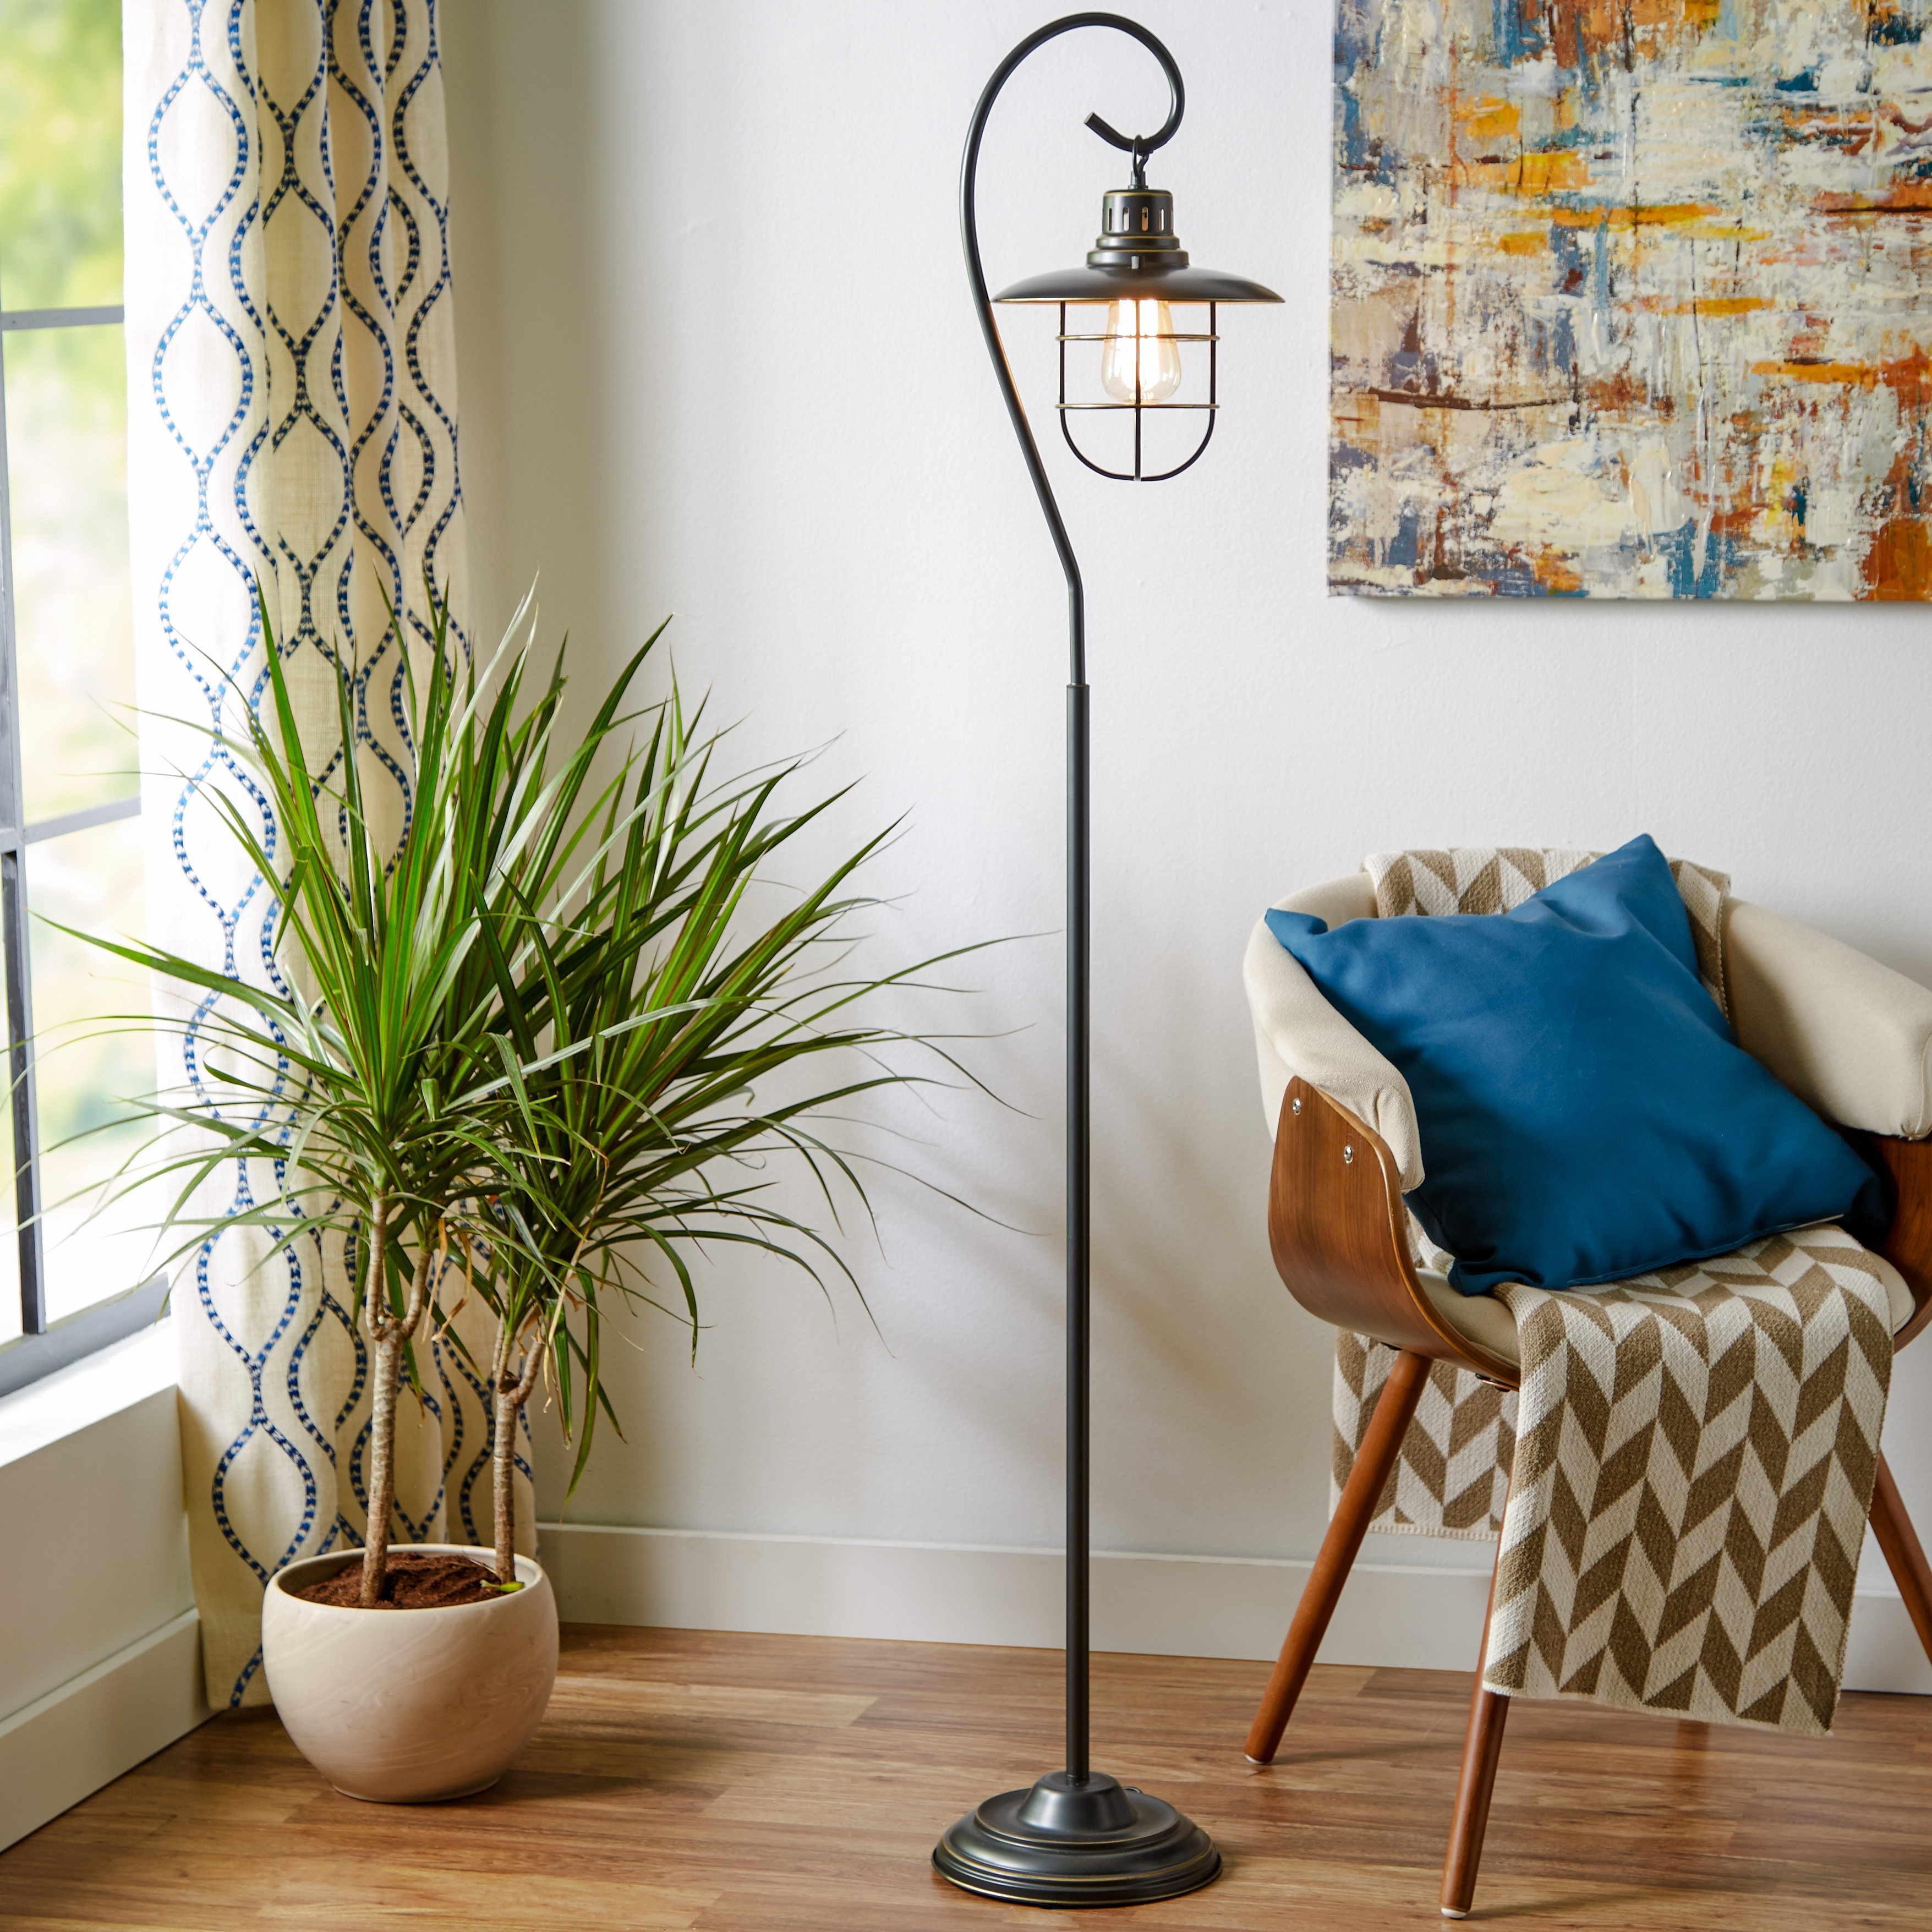 Widely Used Lamp : Best Of Couture Cienga Table Lamp Coastal Floor Lamps Floor Throughout Coastal Living Room Table Lamps (View 6 of 15)